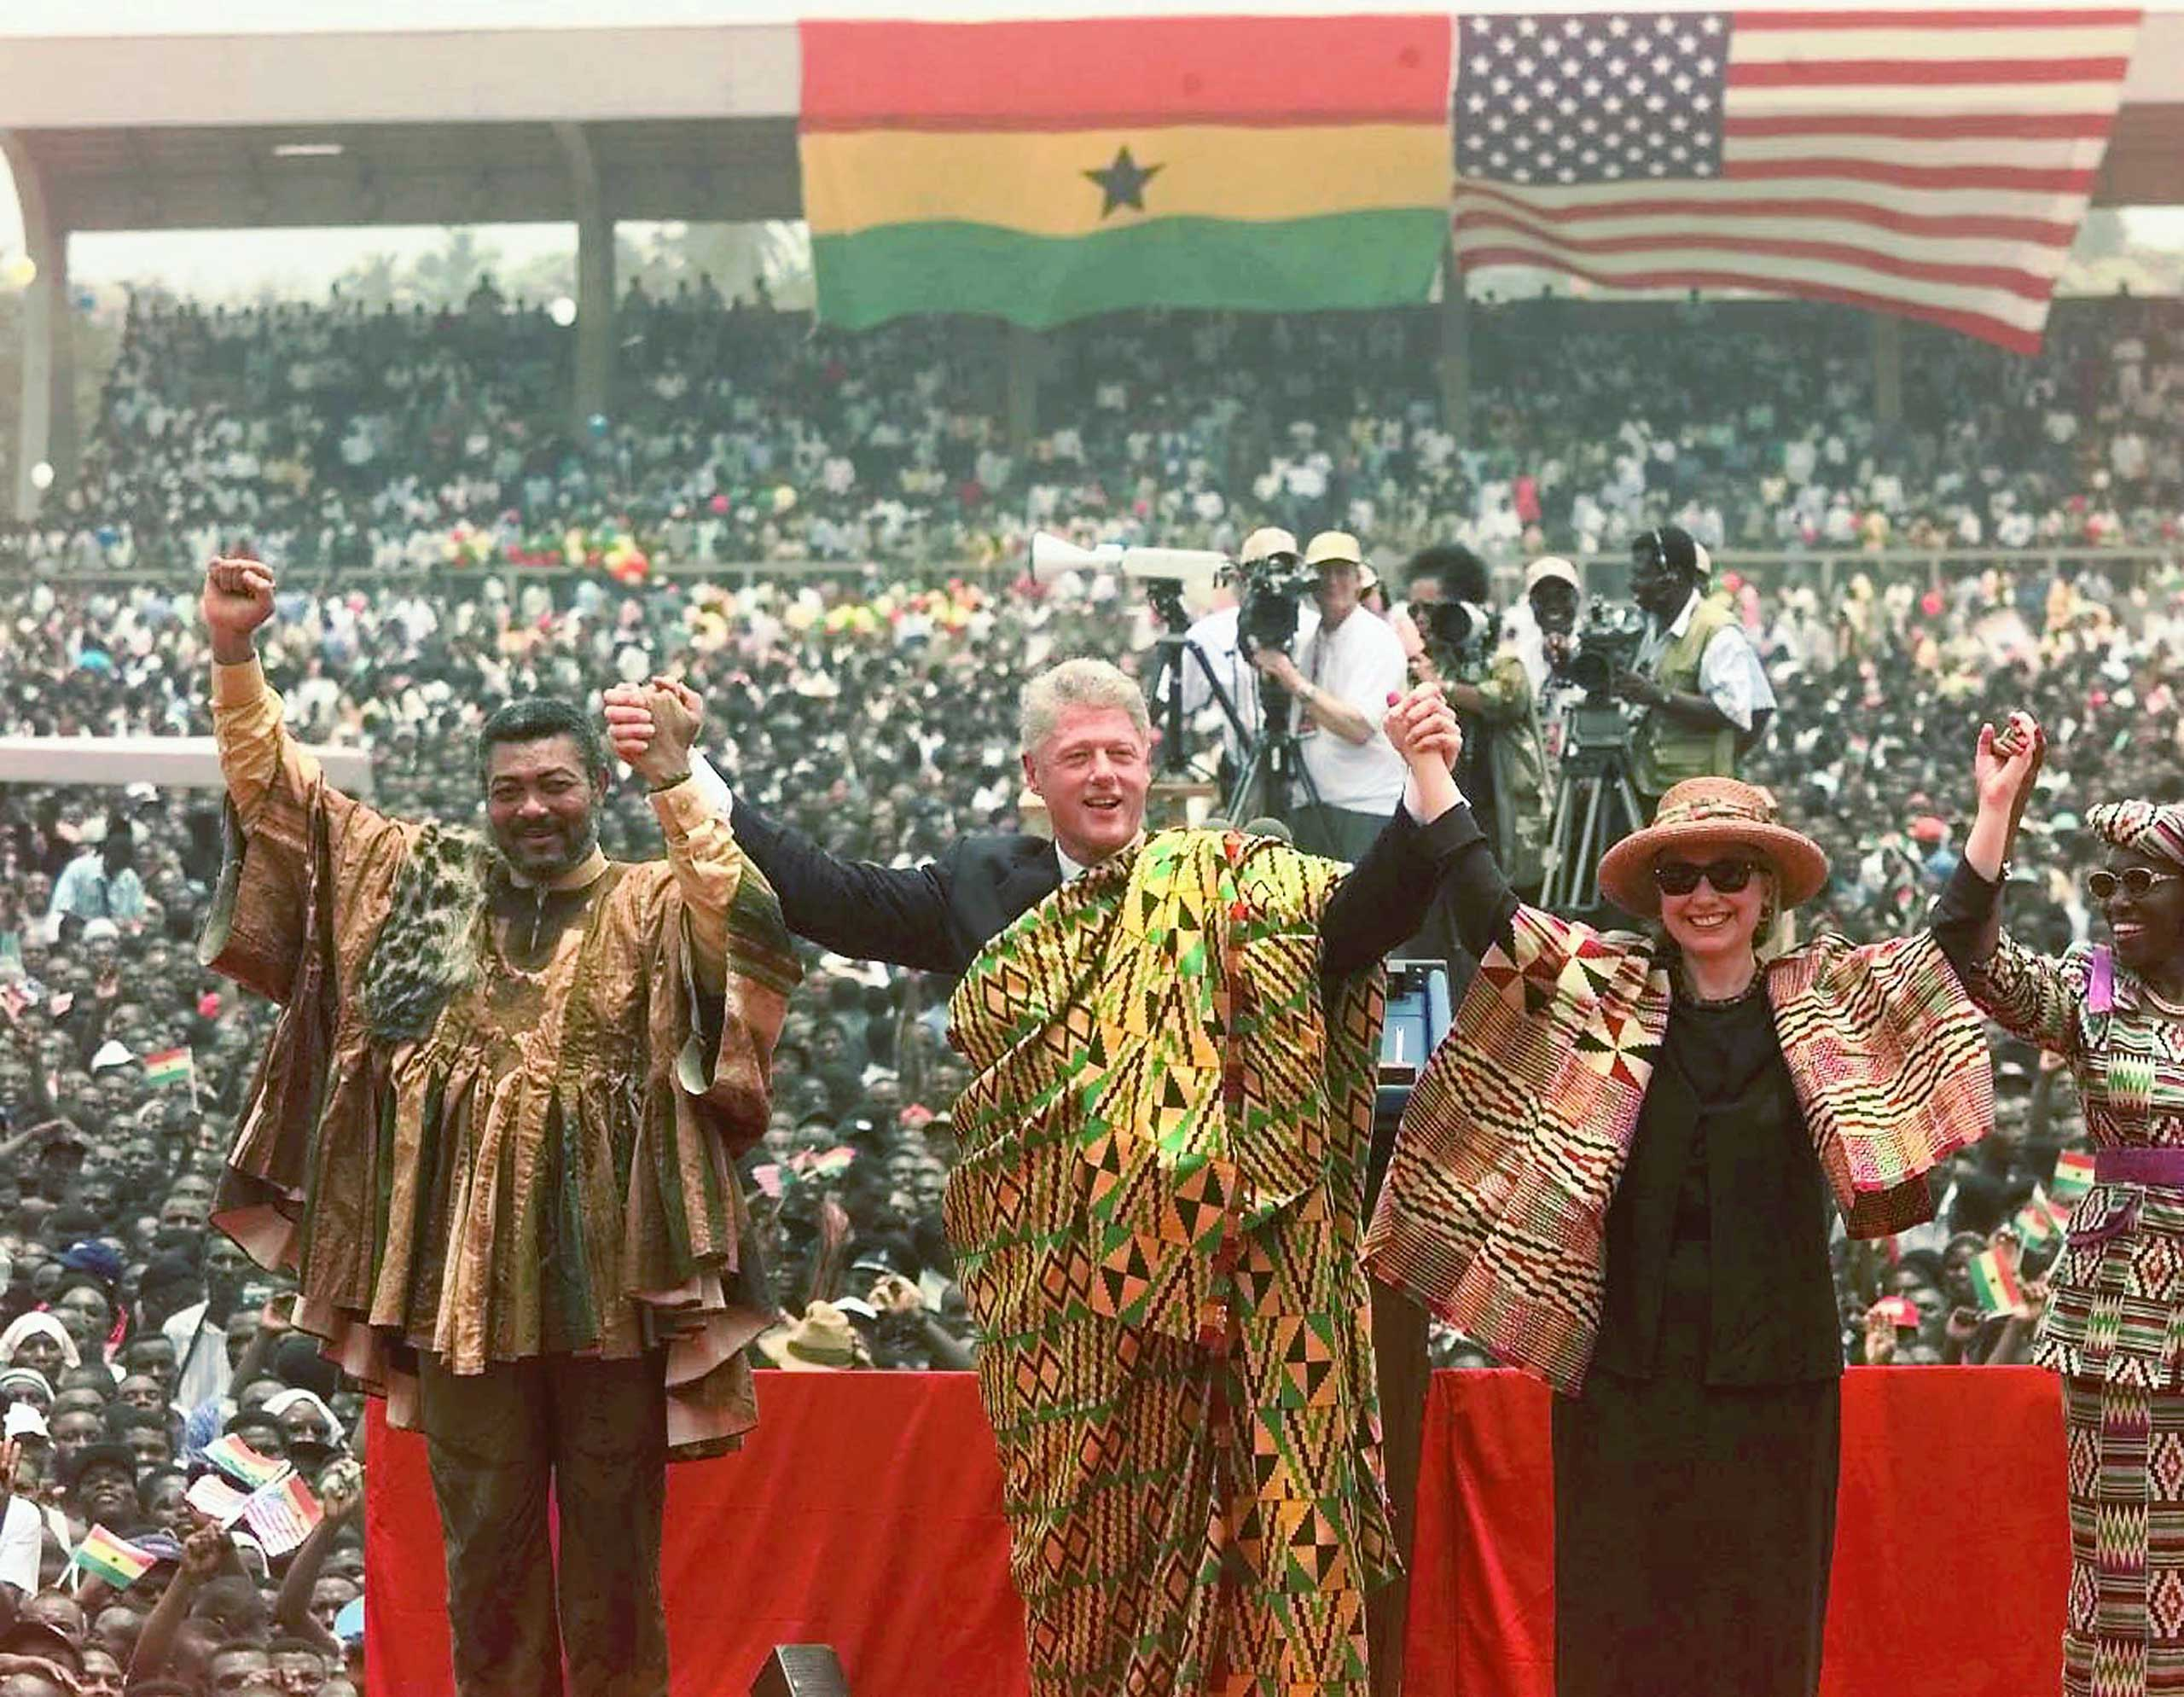 Ghana's President Jerry John Rawlings, left, President Bill Clinton, First Lady Hillary Rodham Clinton, both wearing the Kente traditional Ghanaian dress, and Ghana's First Lady Nana Rawlings, right, greet a crowd of over 200,000 people assembled in Independence Square in Accra, Ghana in 1998.